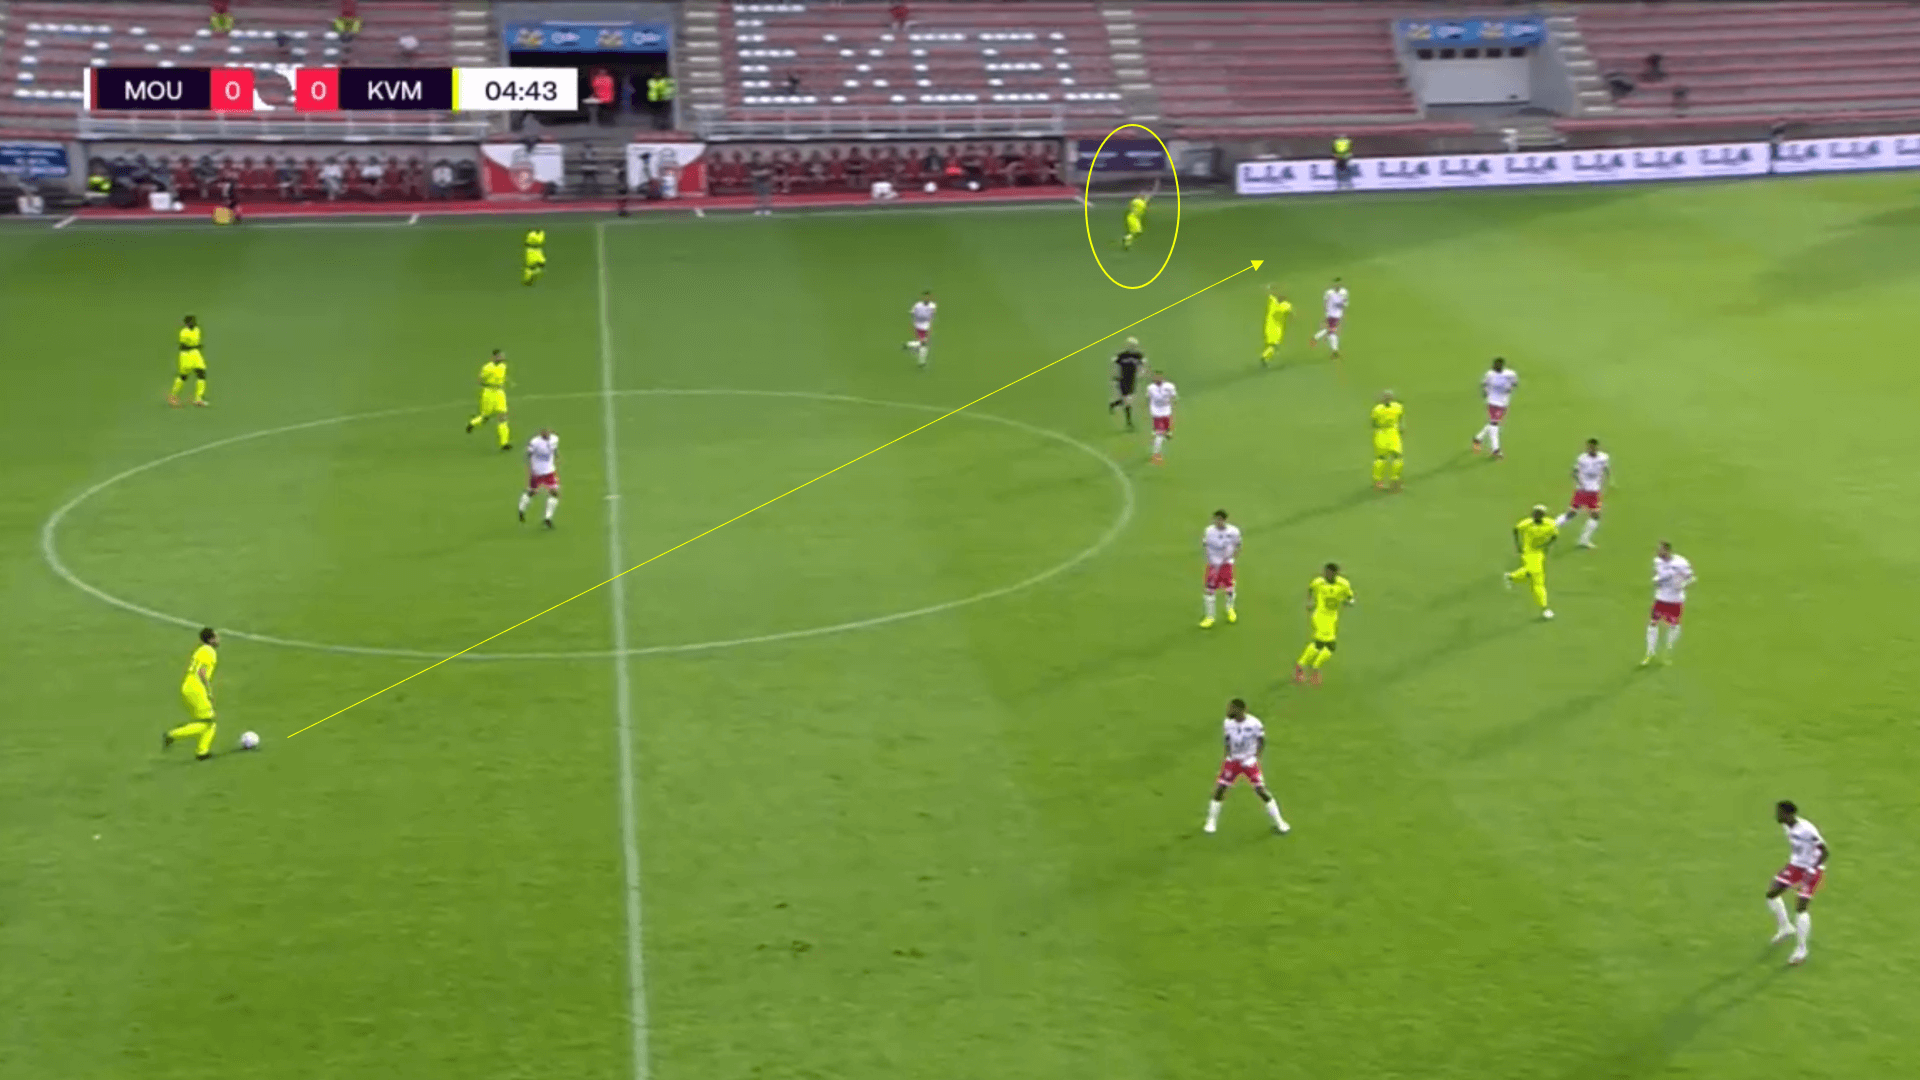 Belgian Pro League 2020/2021 - Royal Excel Mouscron v KV Mechelen - tactical analysis tactics